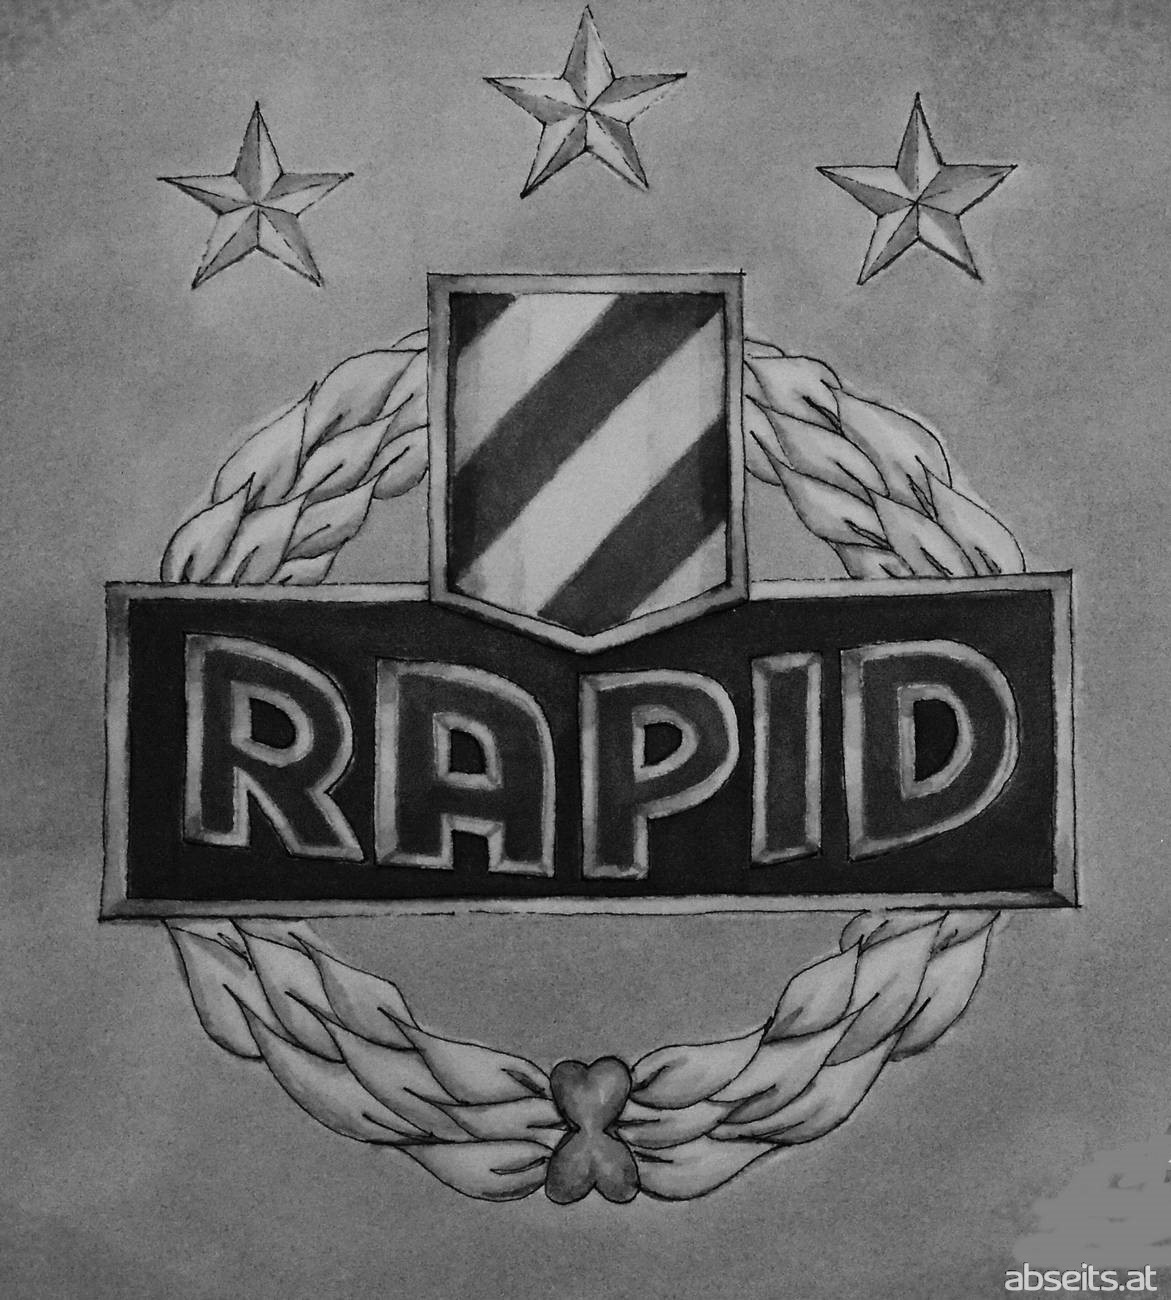 Rapid retro_abseits.at